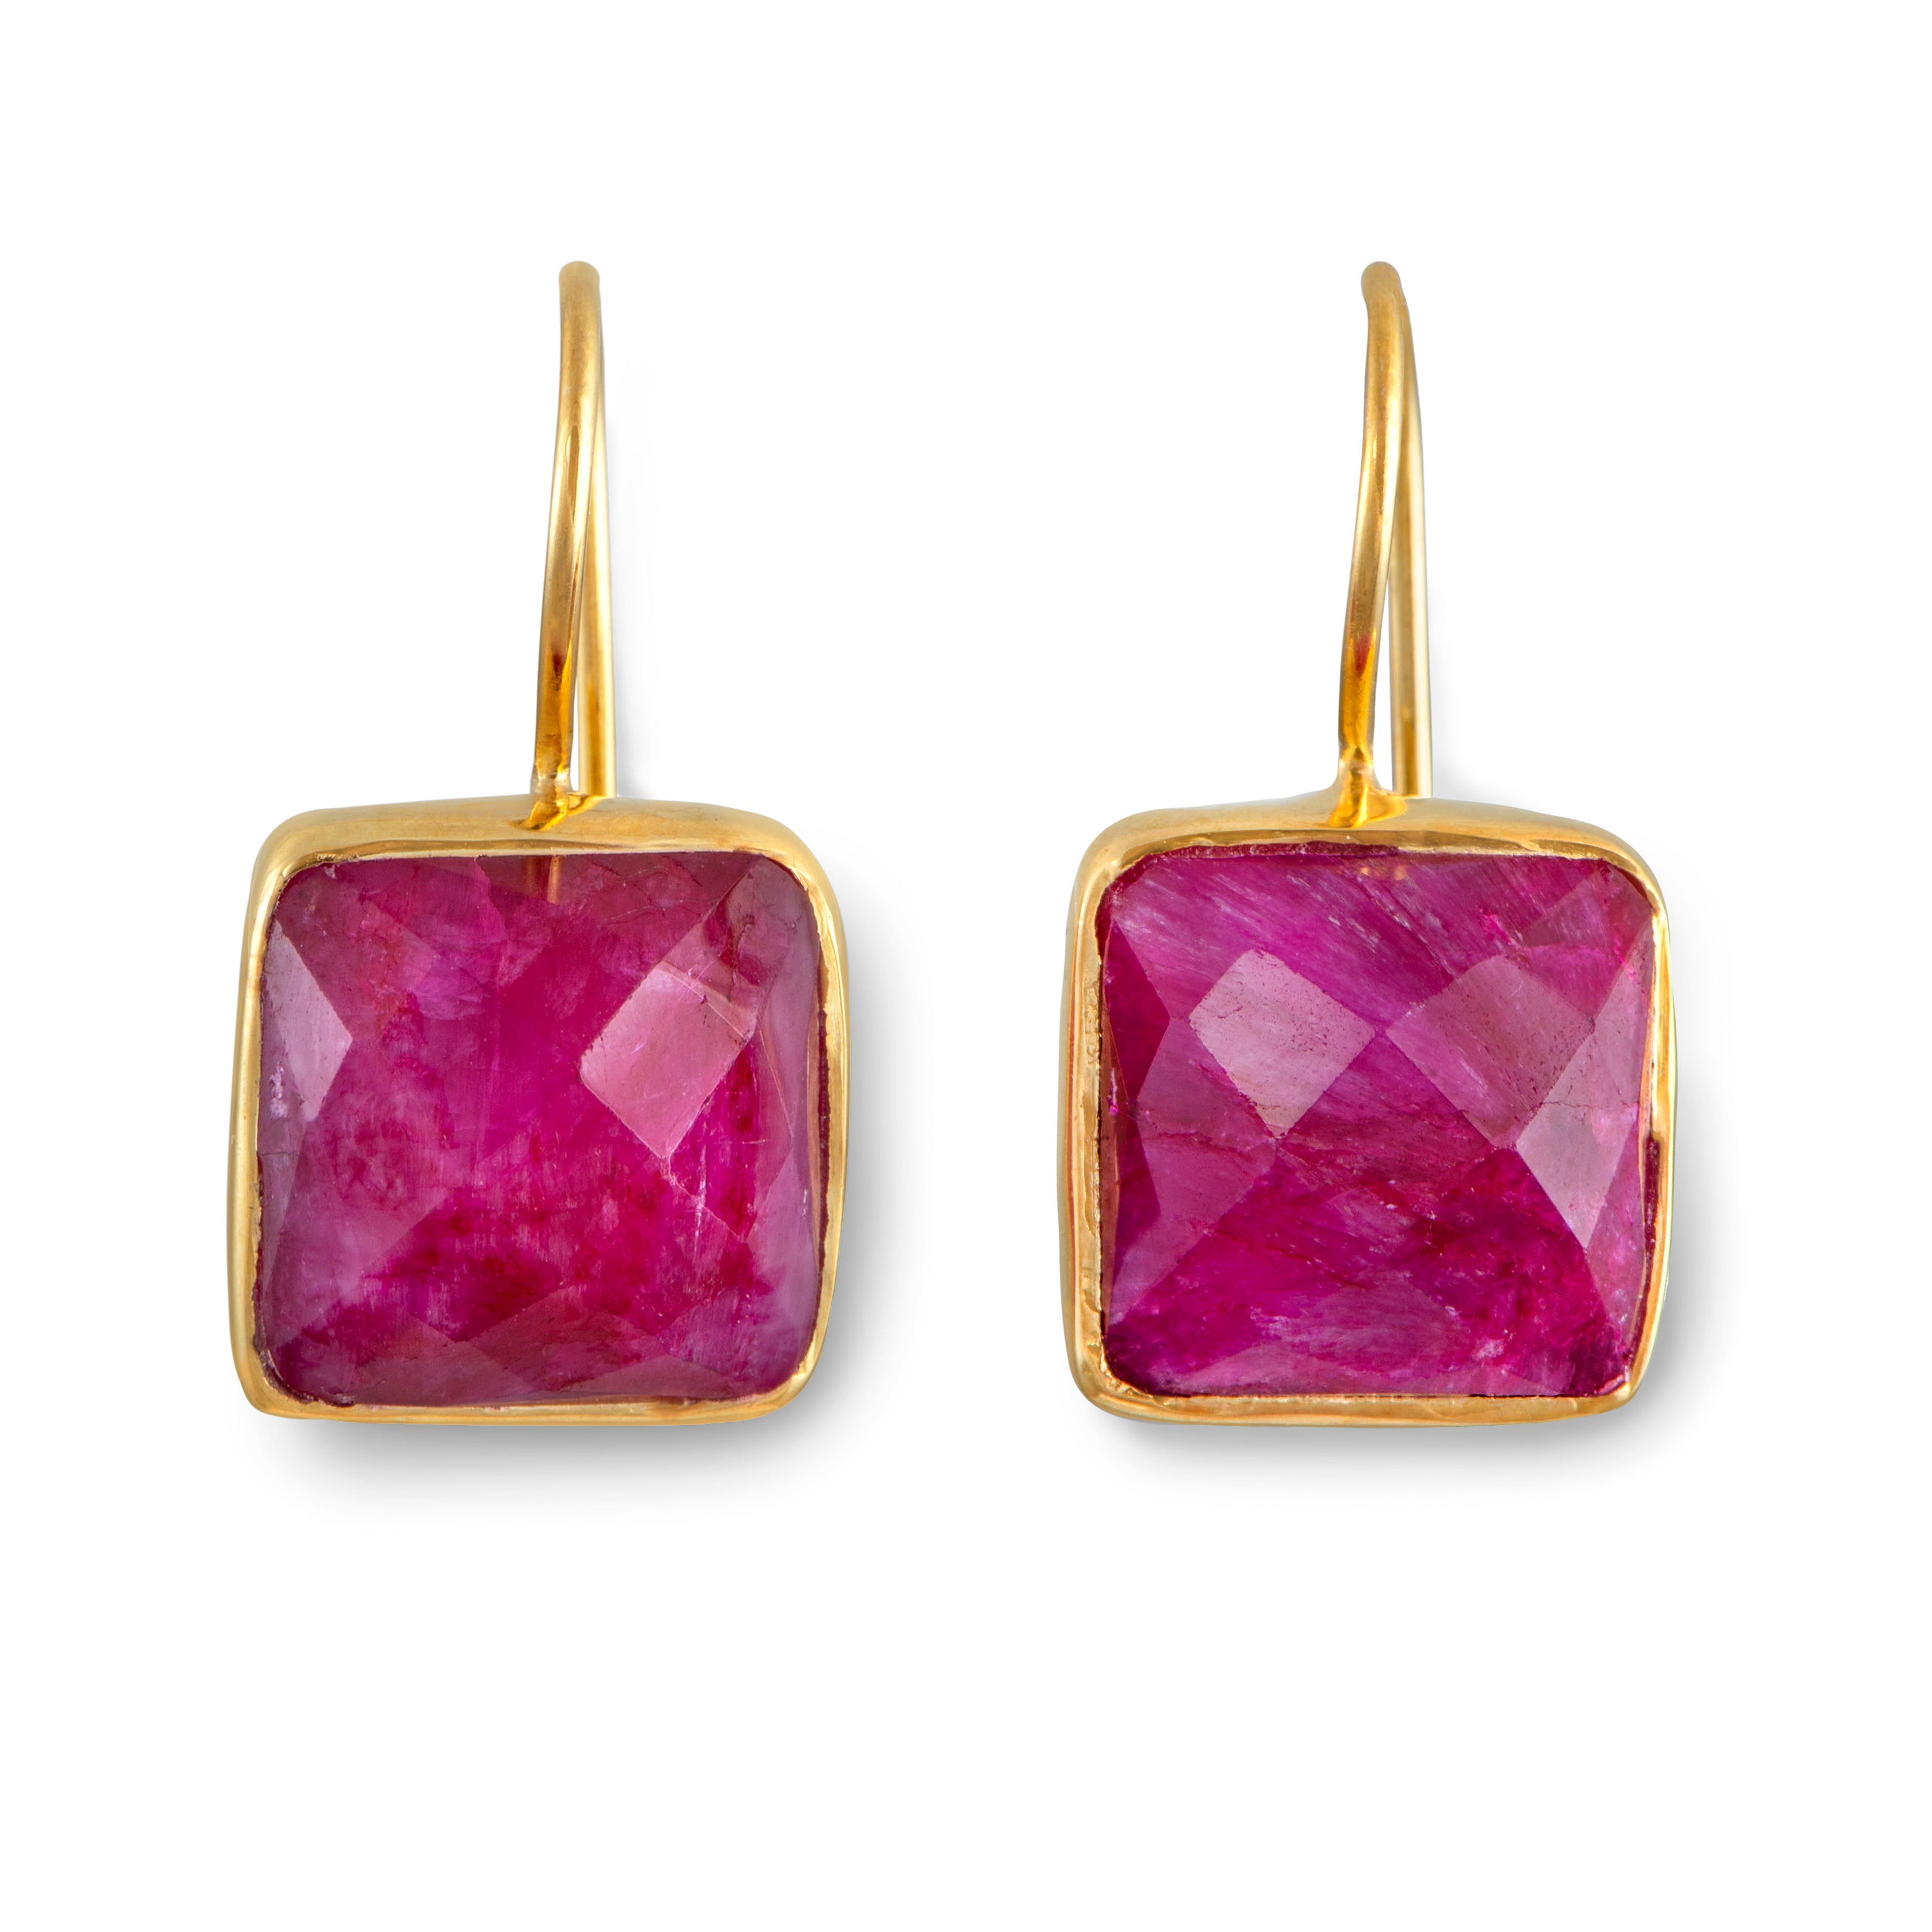 Gold Plated Sterling Silver Square Gemstone Earrings - Ruby Pink Quartz